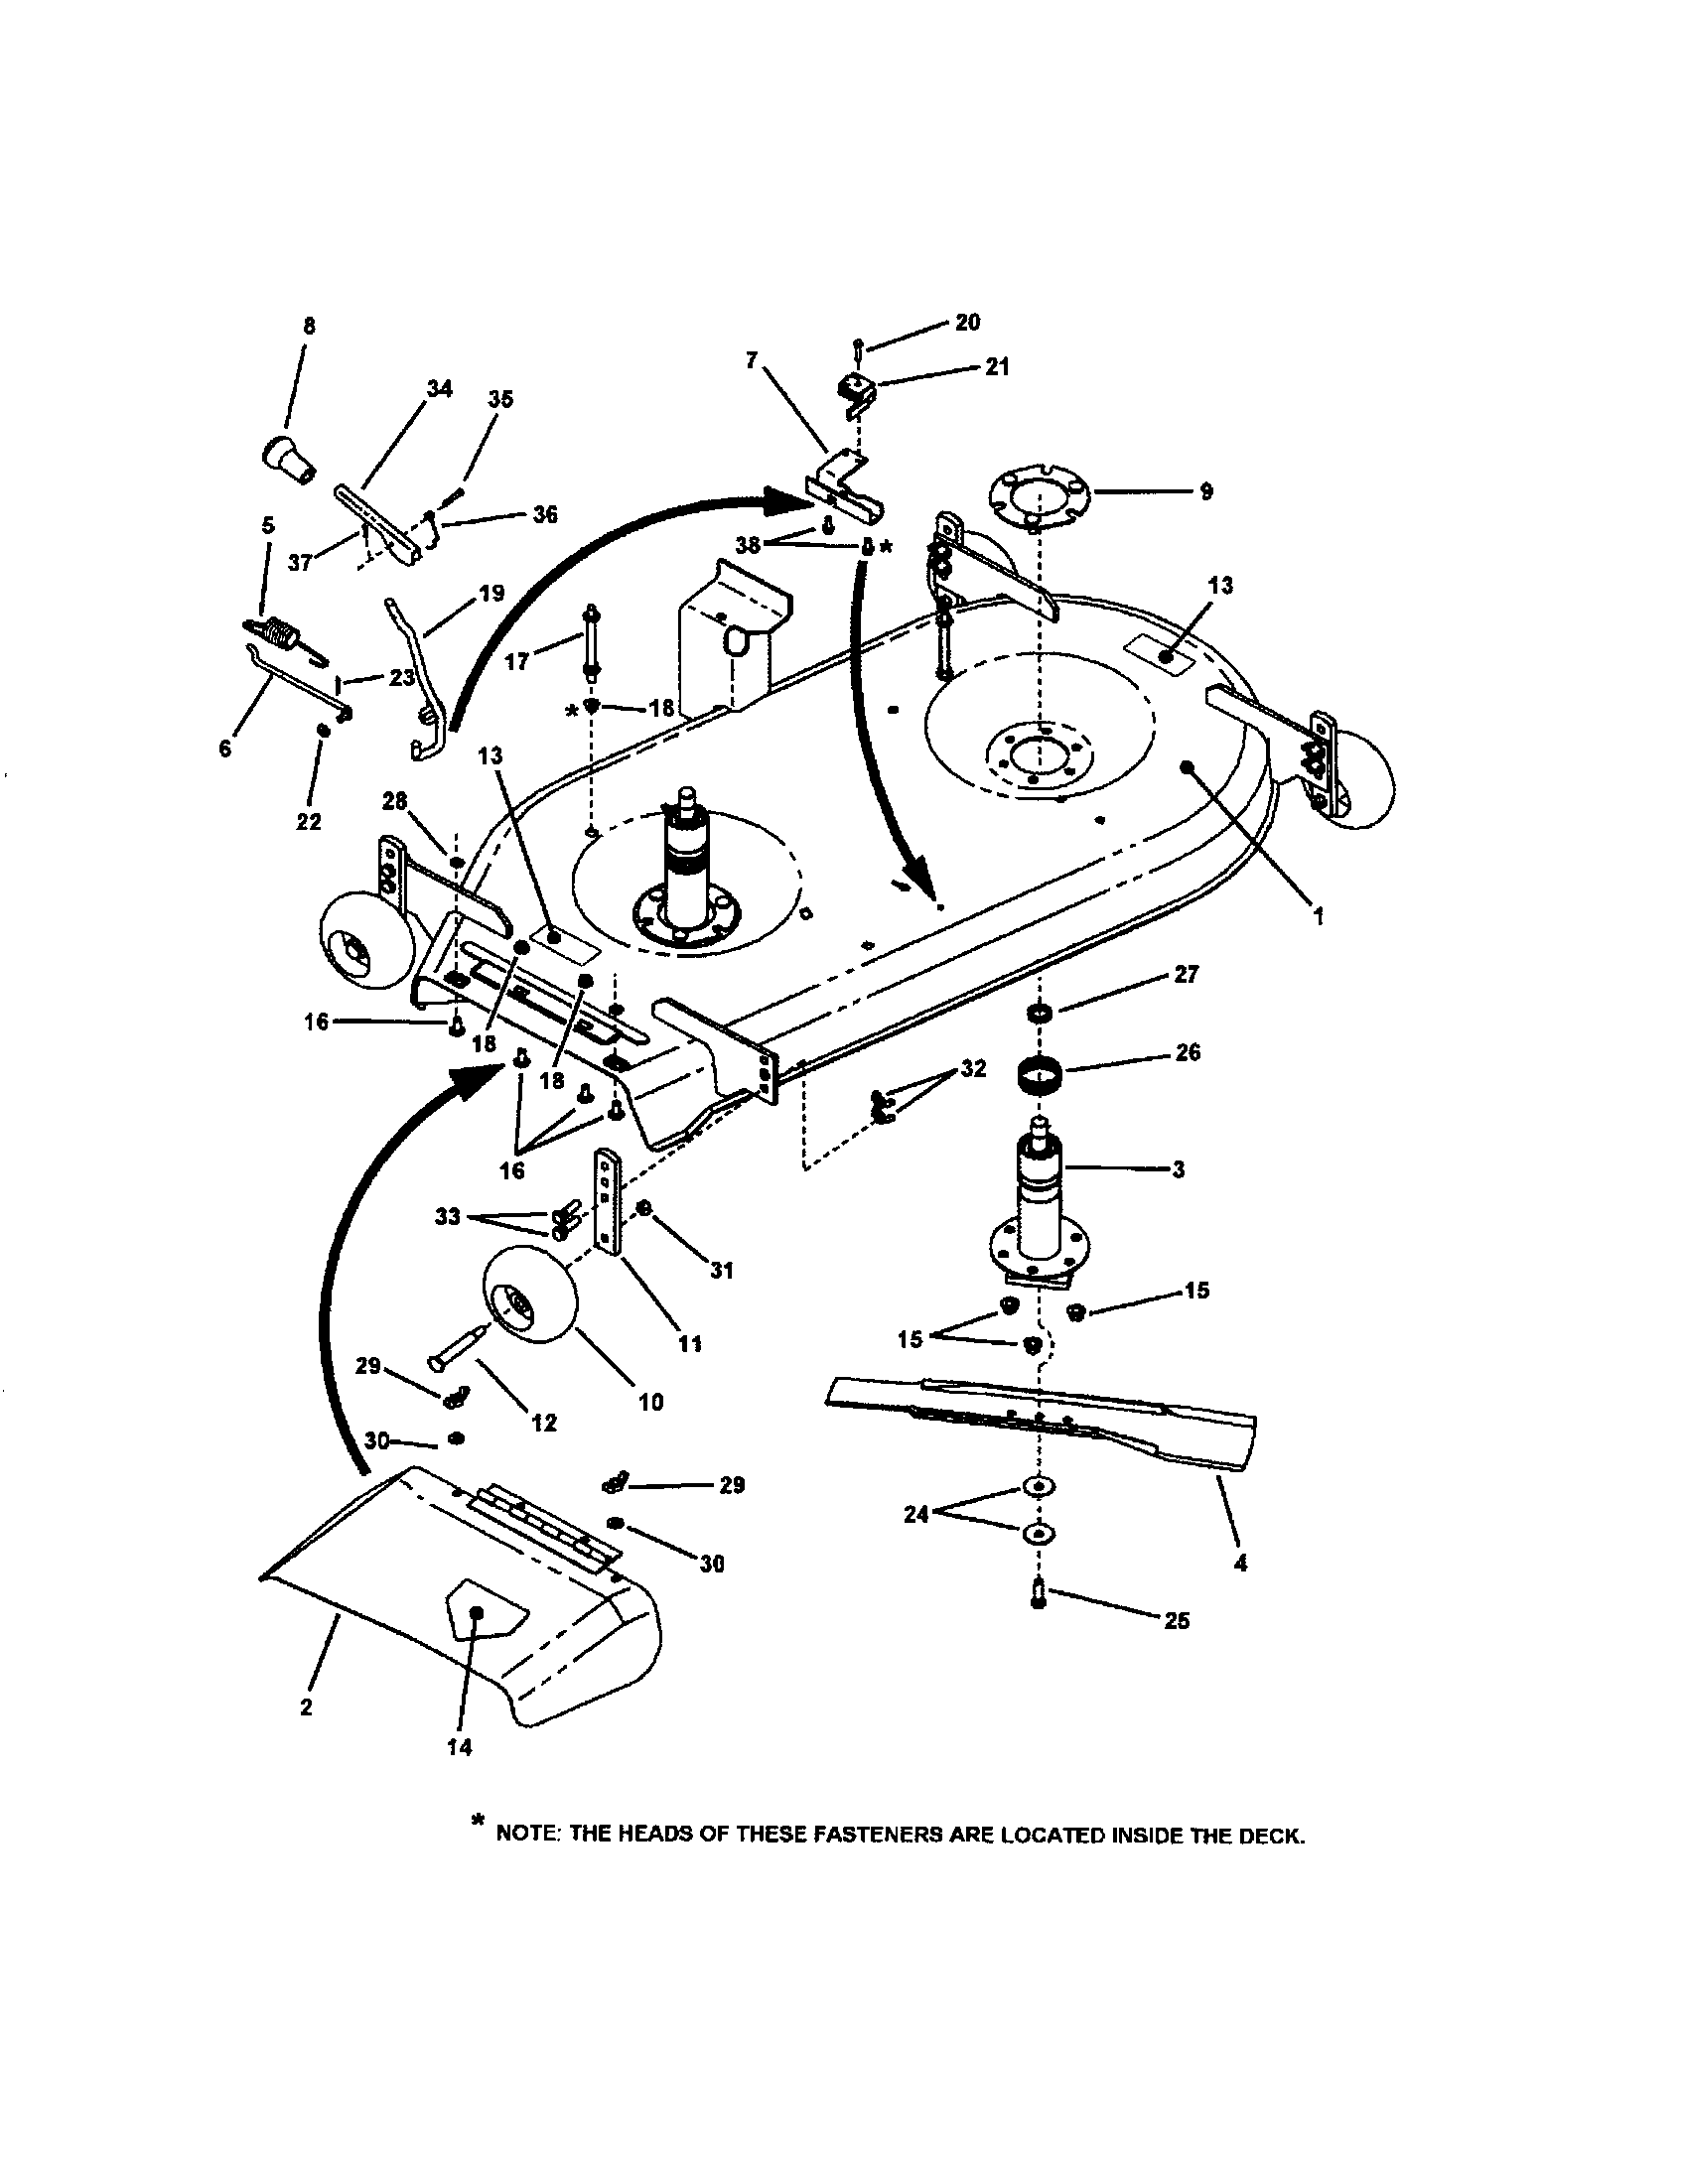 hight resolution of 42 mower deck pt 1 diagram and parts list for snapper ridingmower